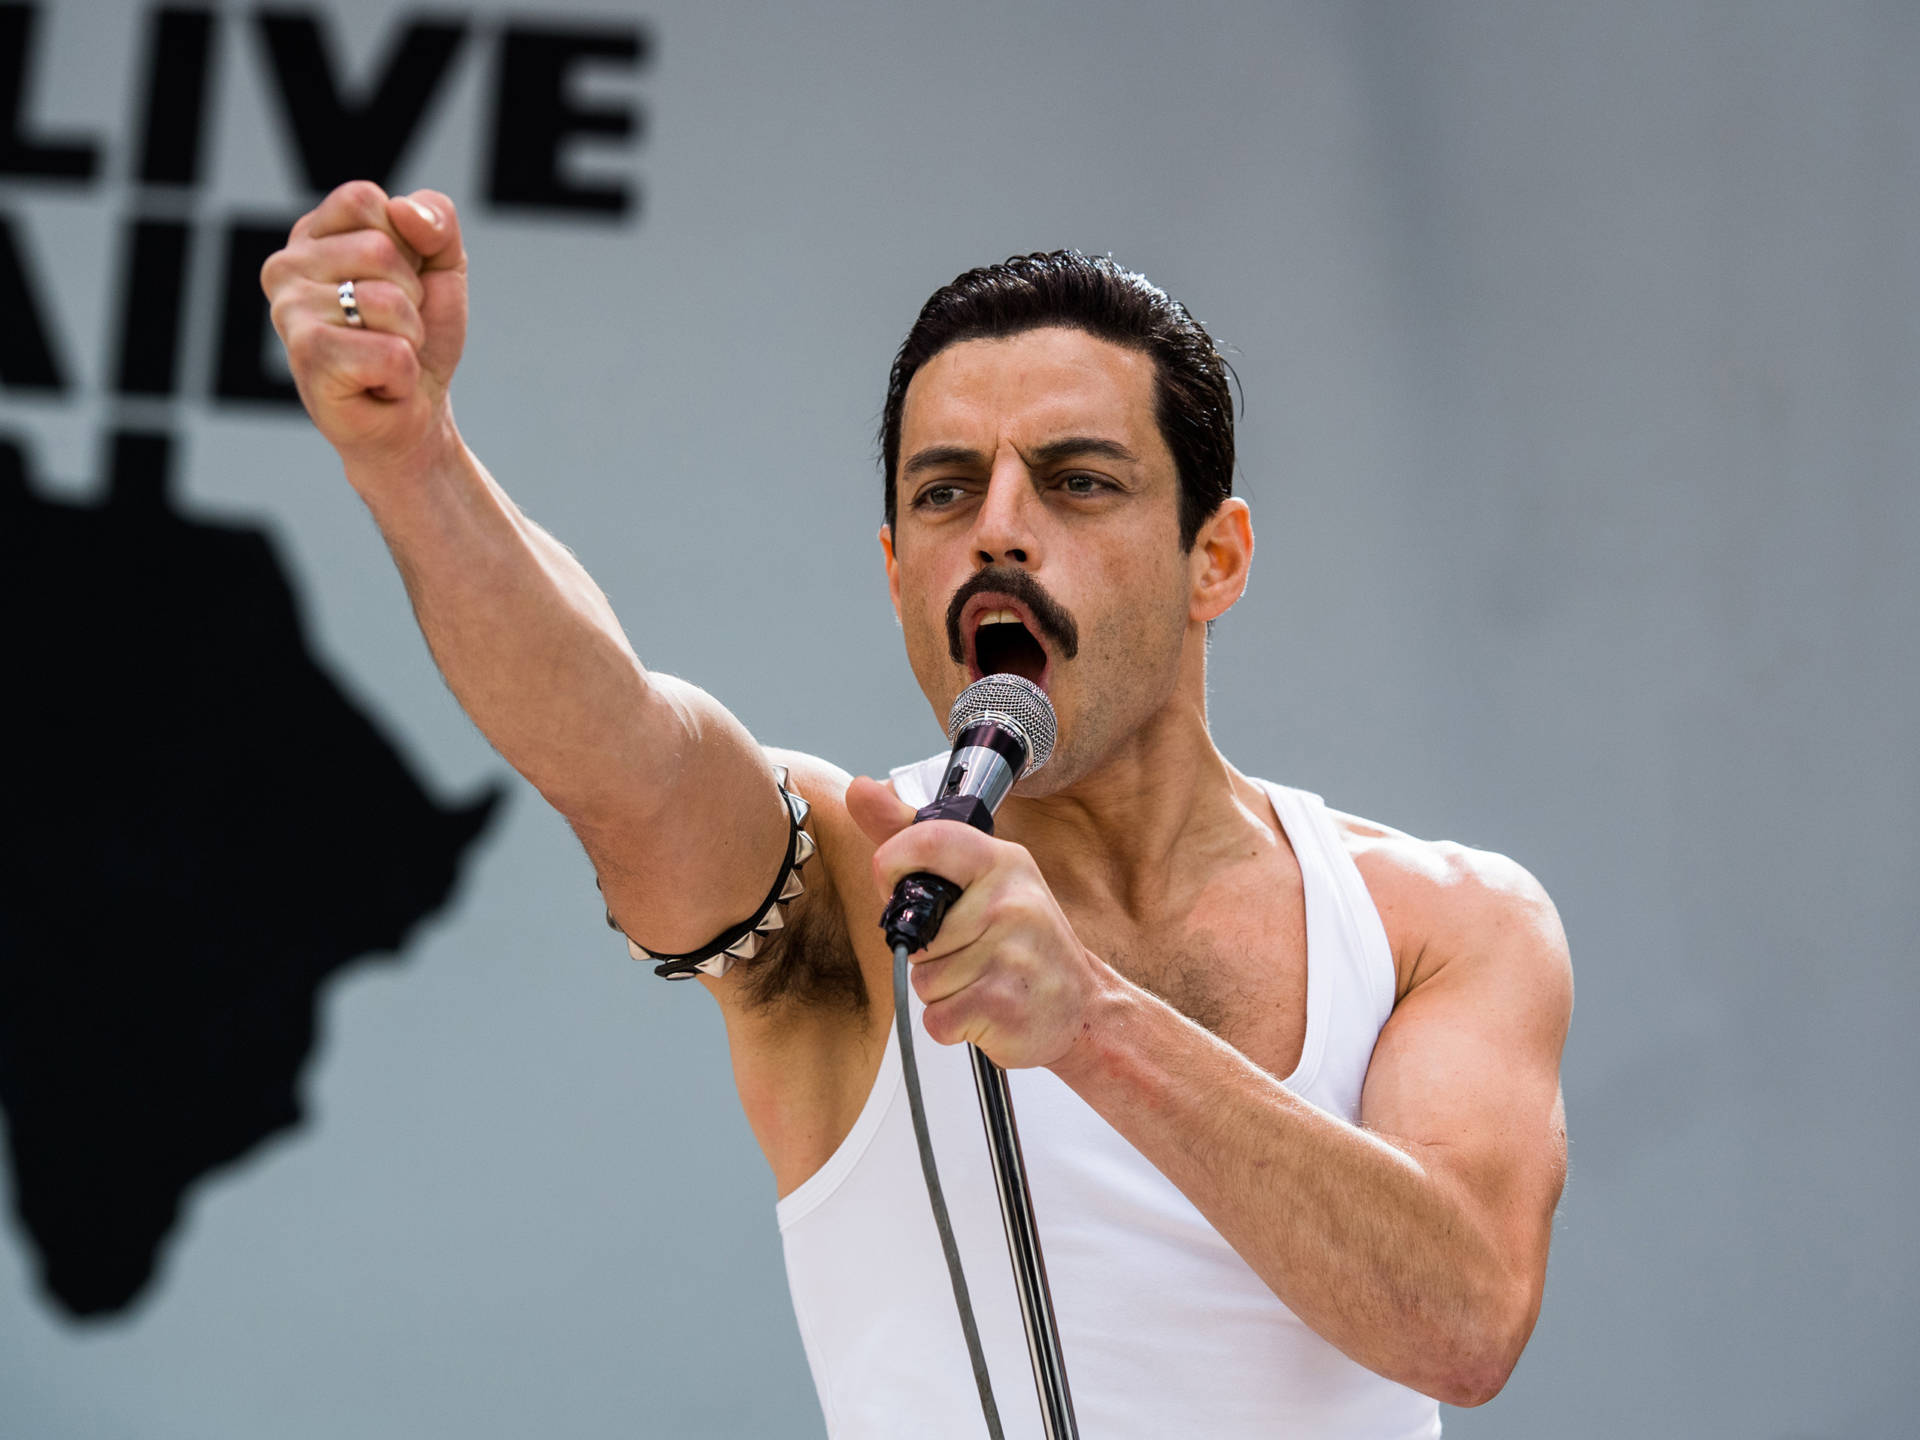 Rami Malek stars as Queen lead singer Freddie Mercury in 'Bohemian Rhapsody.' Alex Bailey/20th Century Fox